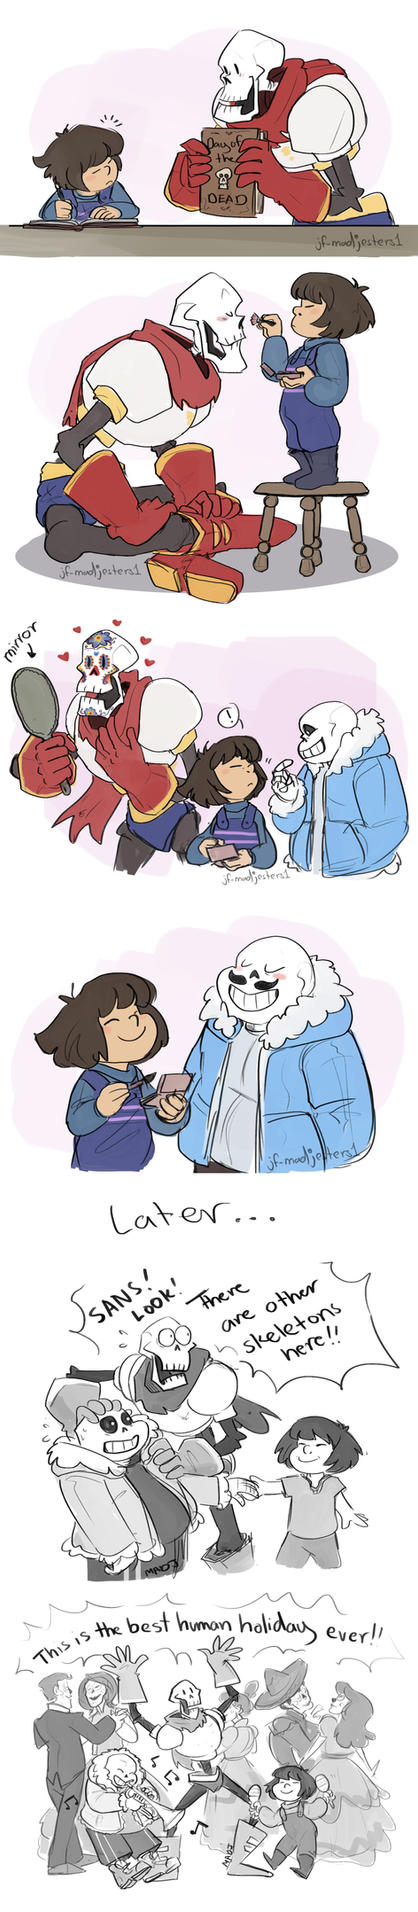 Undertale- Day of the Dead by MadJesters1